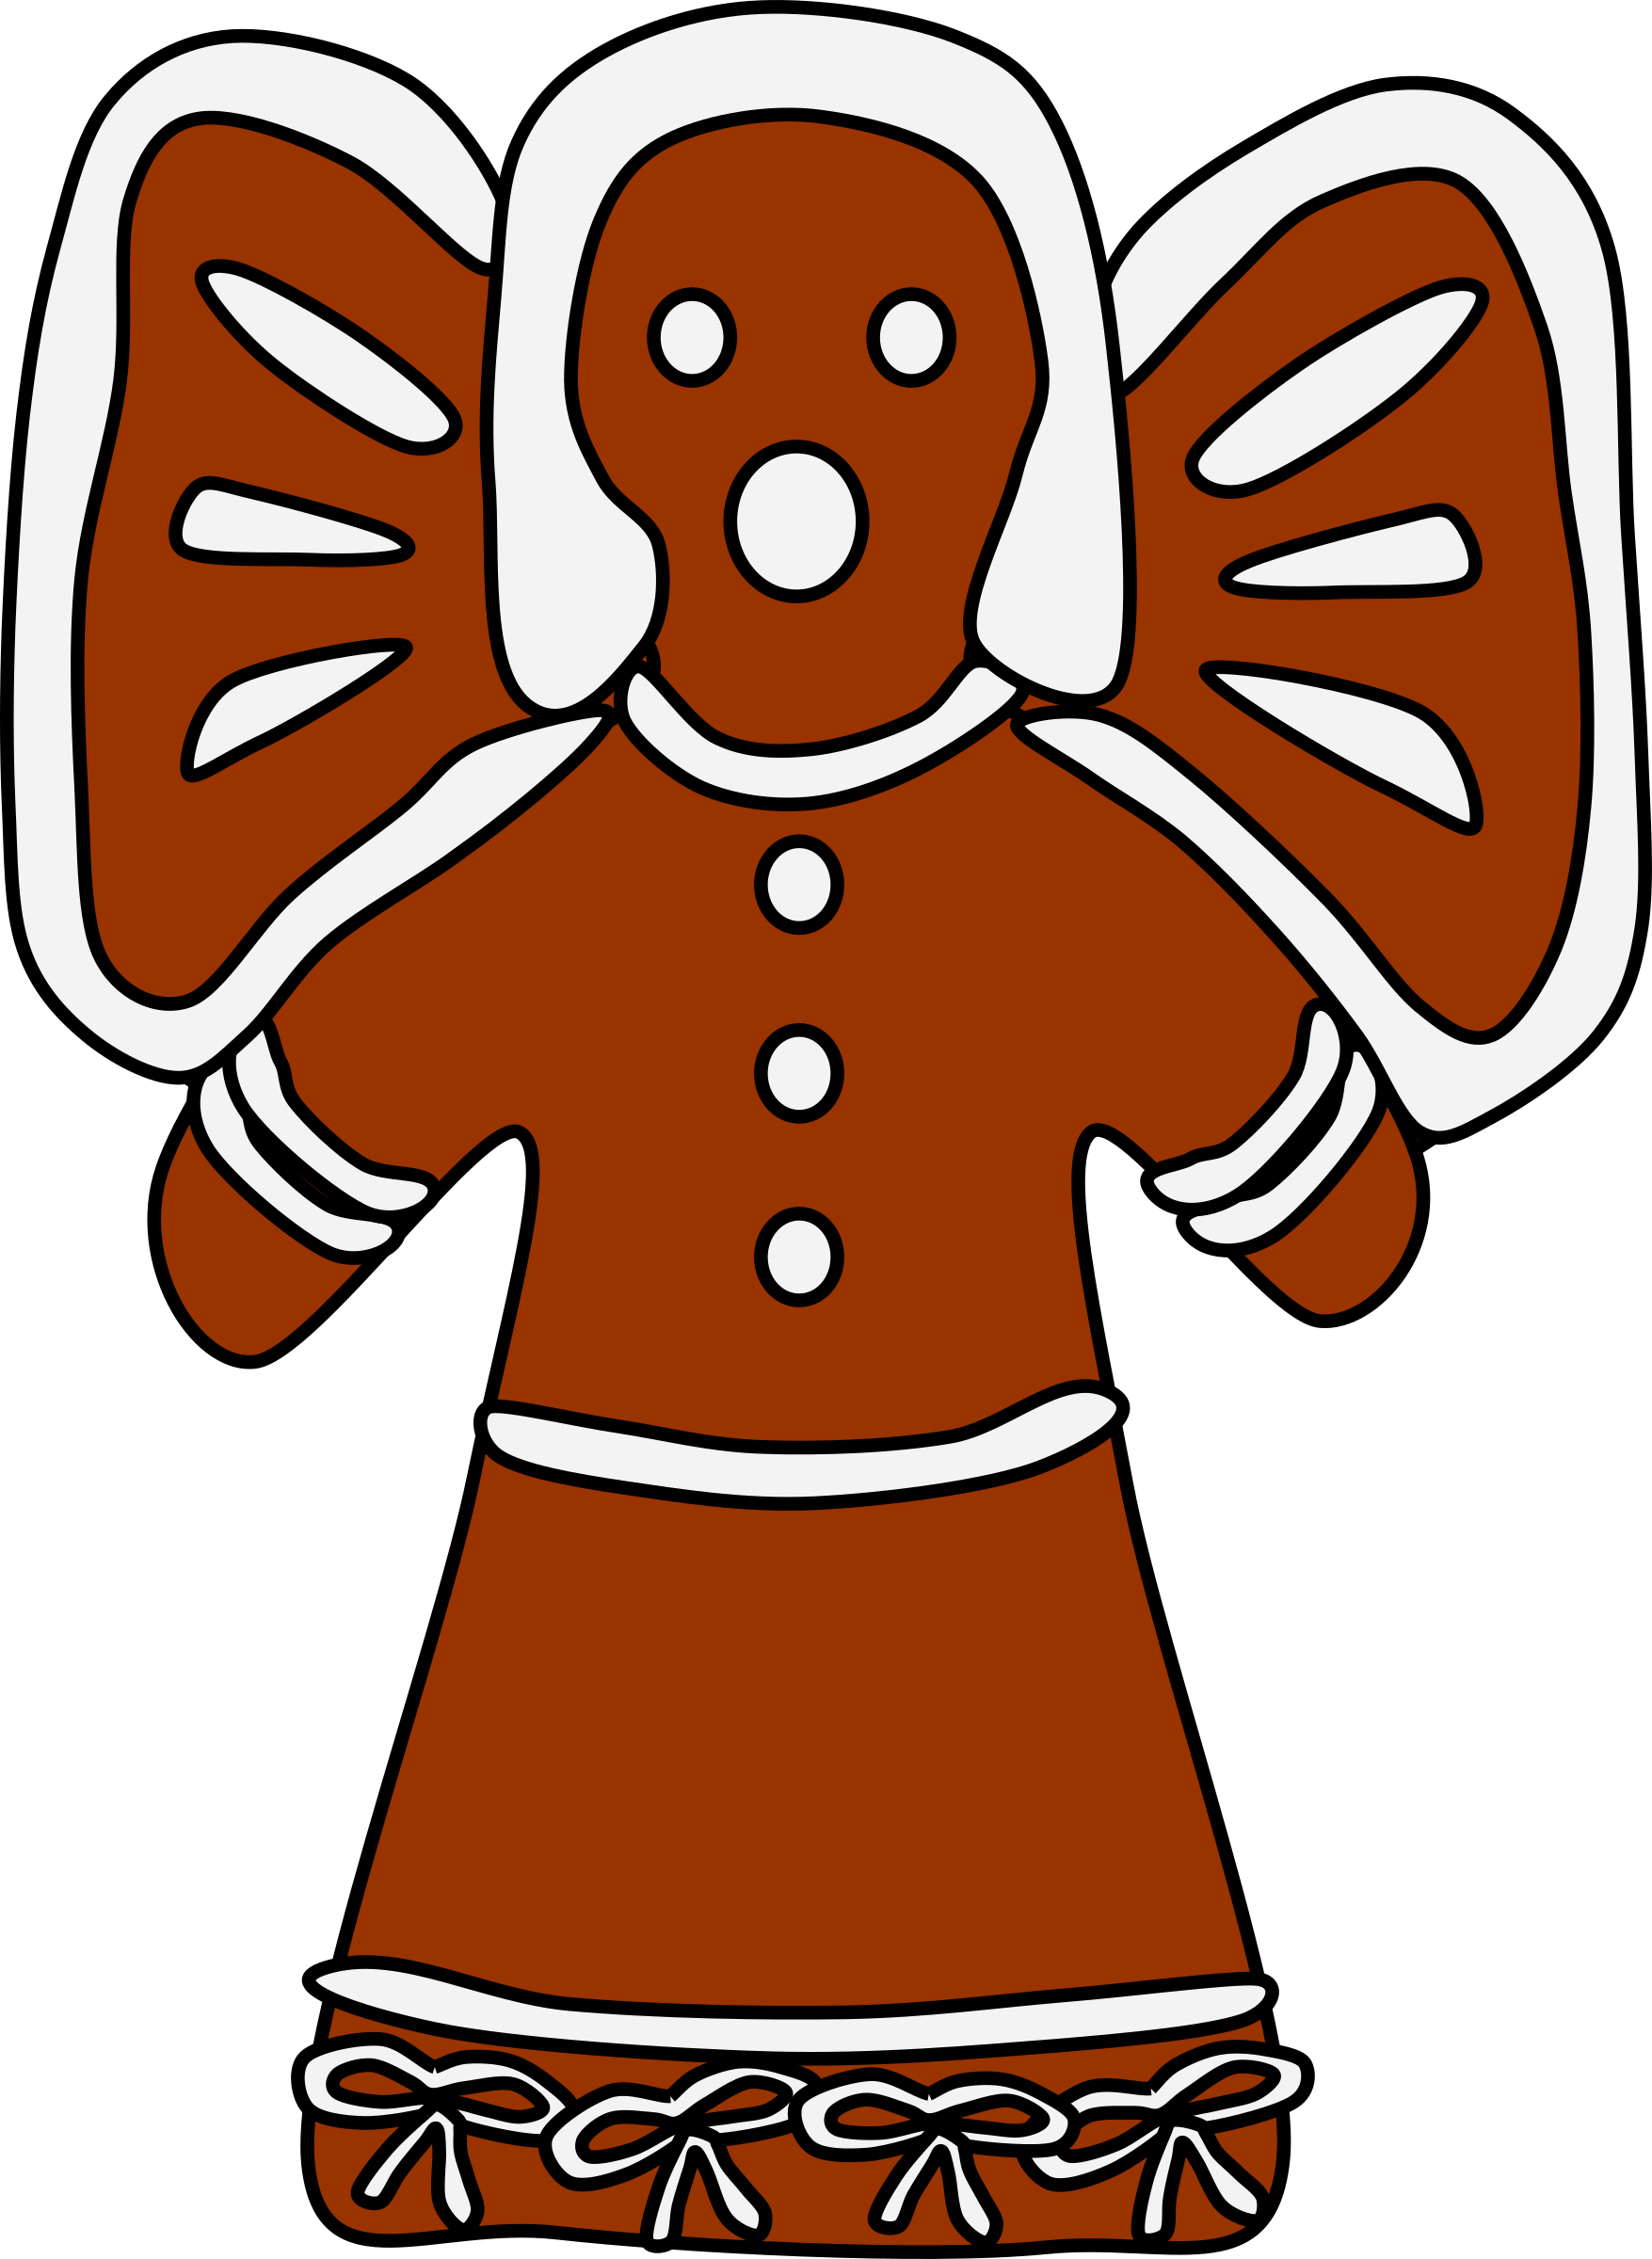 Gingerbread Angel (with bows) by barnheartowl